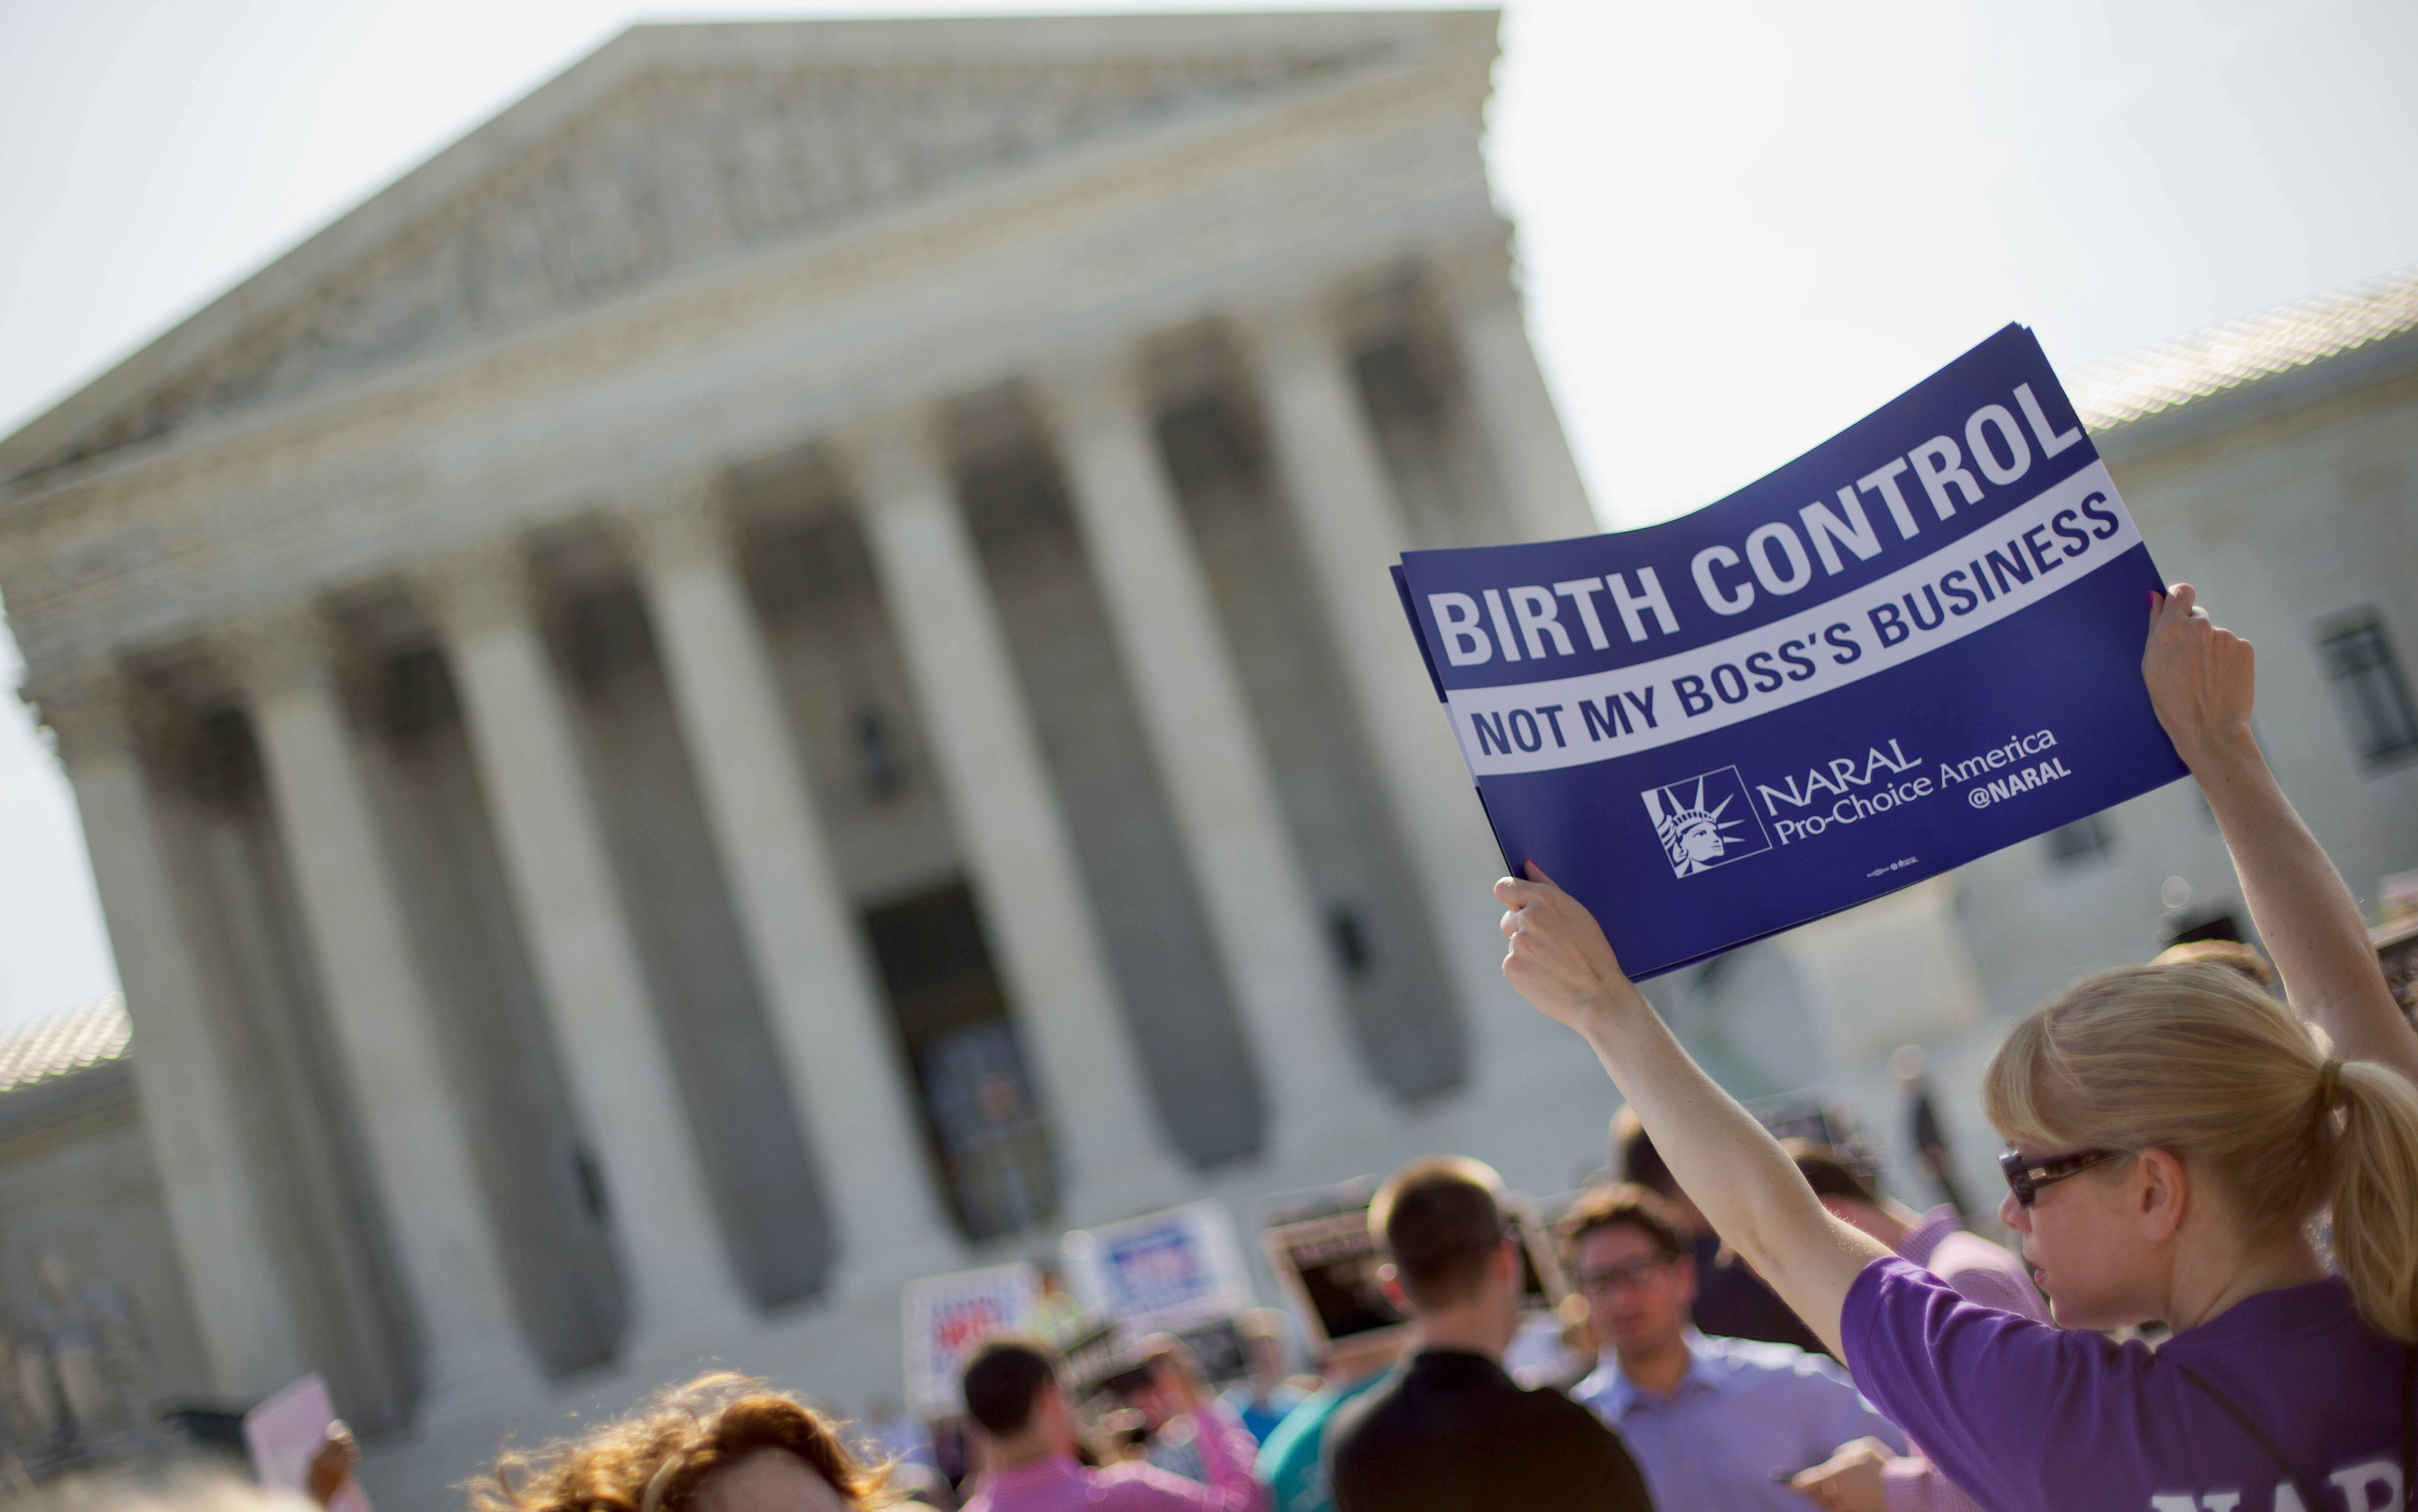 A demonstrator holding up a sign outside the Supreme Court in Washington. Seeking to quell a politically charged controversy, the Obama administration announced new measures Friday to allow religious nonprofits and some companies to opt out of paying for birth control for female employees.